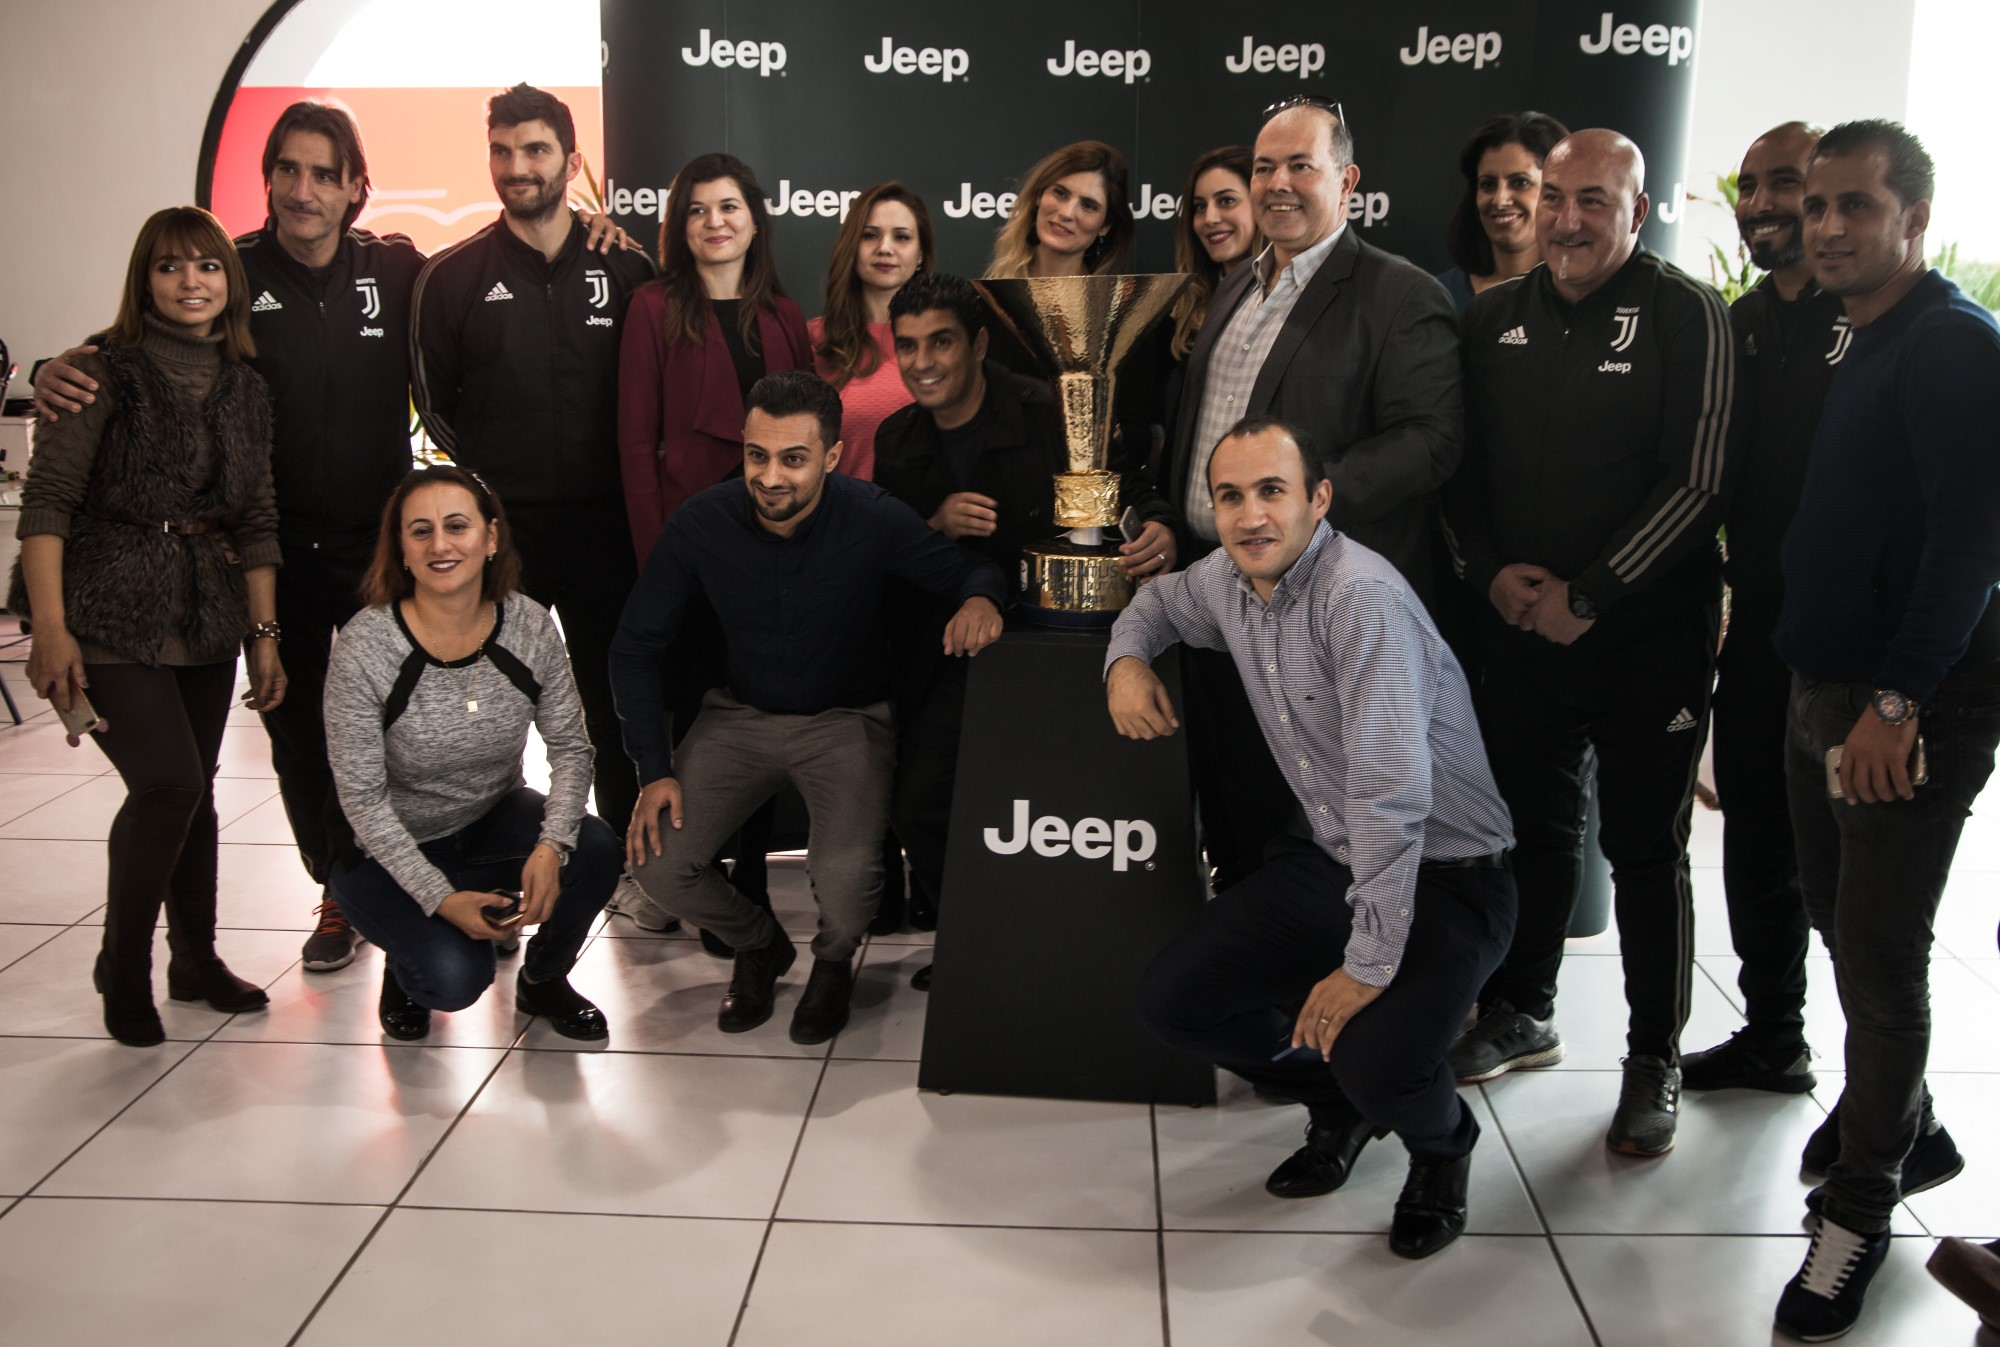 Jeep reçoit le Scudetto à son showroom du Lac